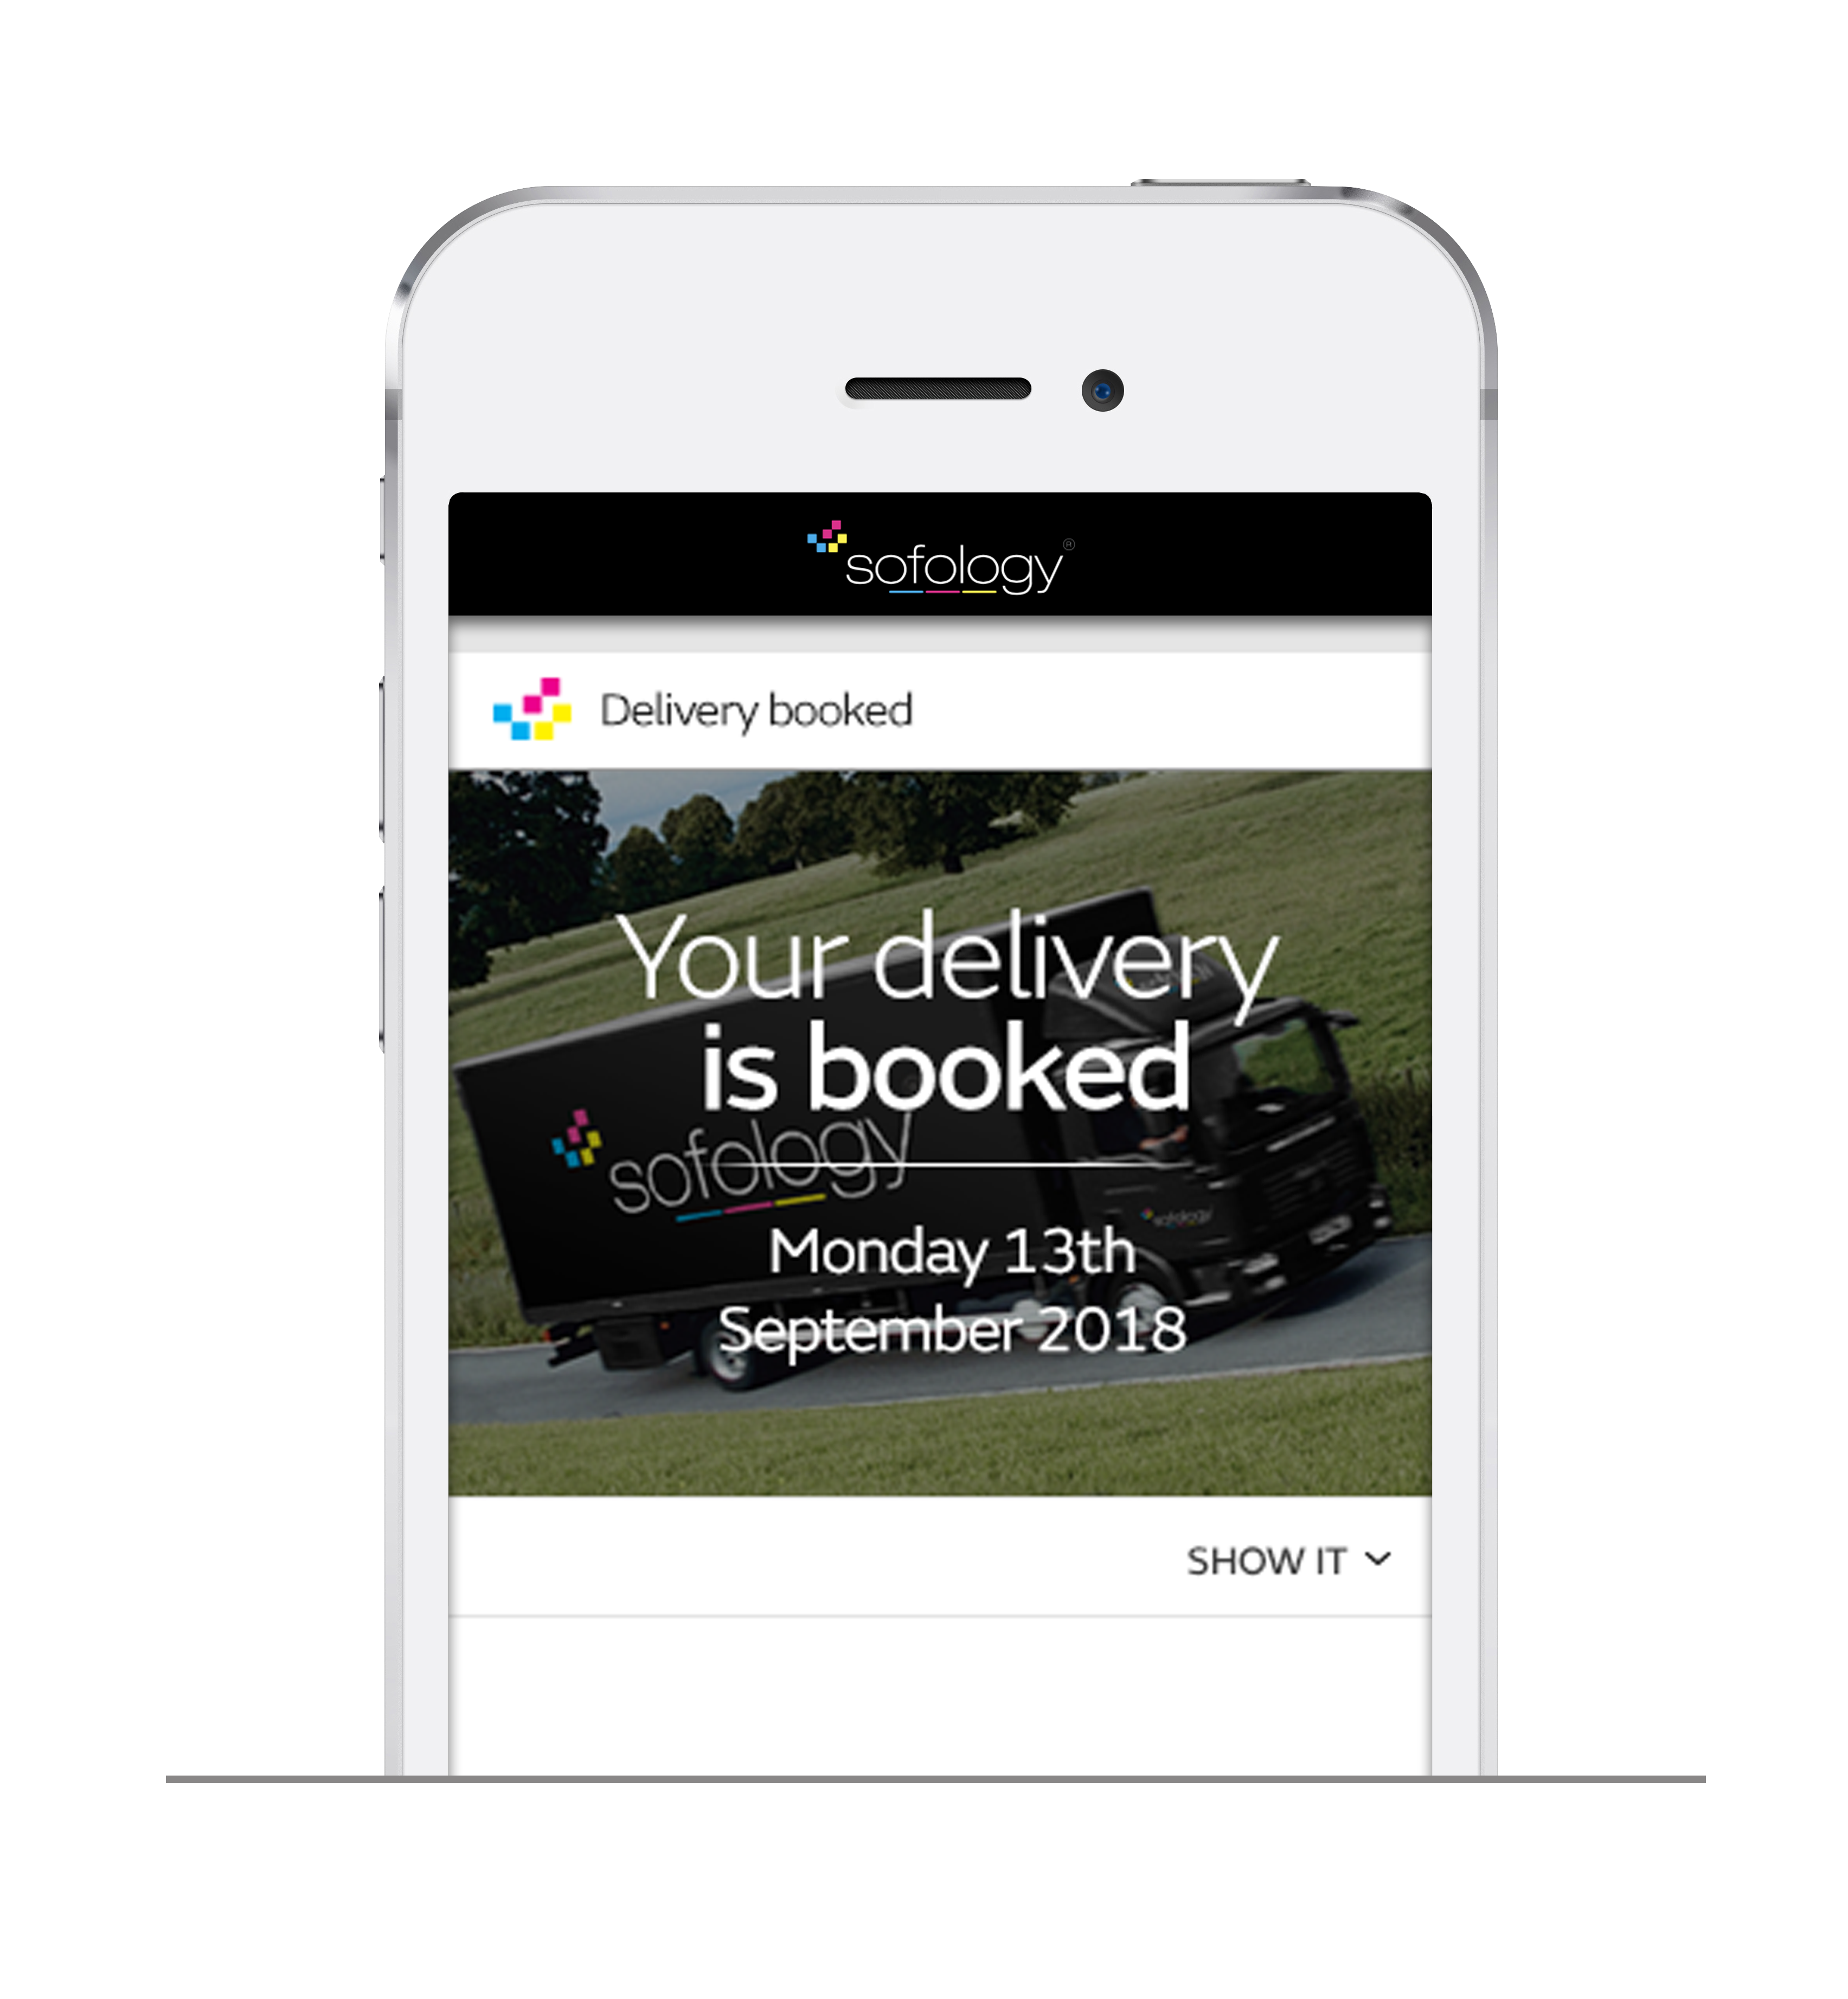 you can book delivery